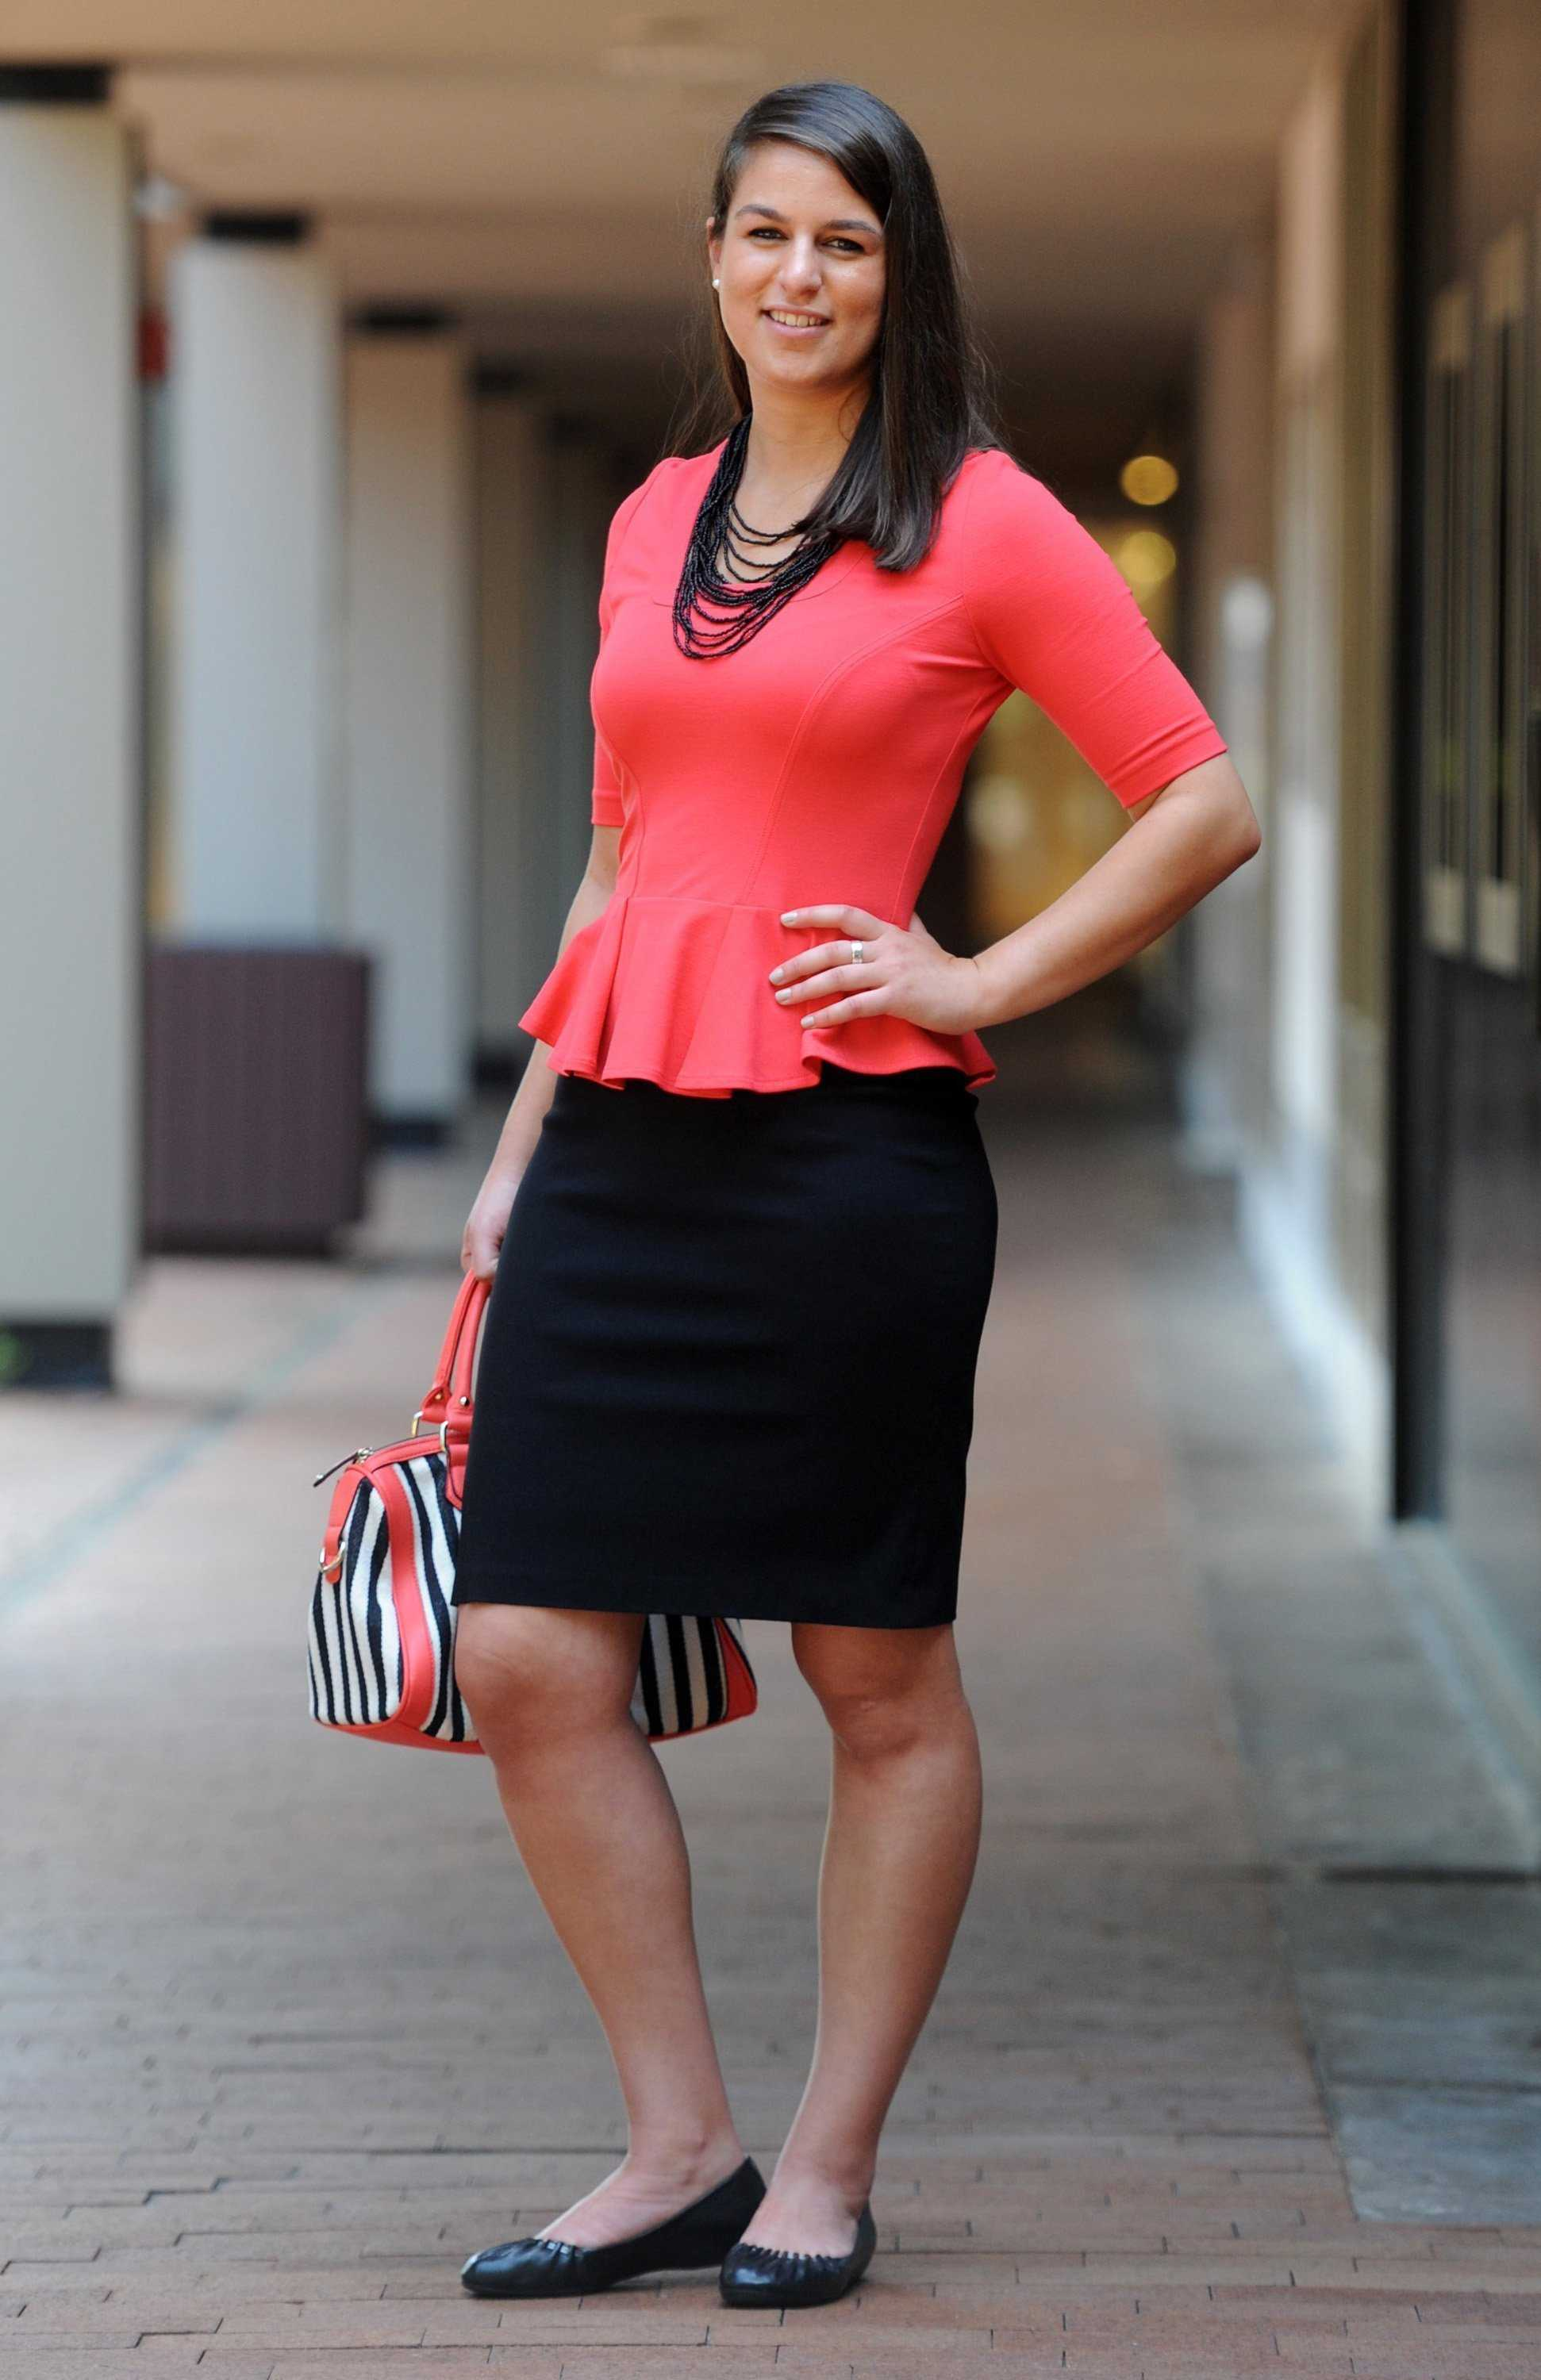 Recent college graduates need to find the right way to stay stylish, yet professional, for the workplace. A Yoanna Barchi peplum top and skirt by Equestrian are paried with a handbag by High Fashion and flats by Steve Madden. (Kim Hairston/Baltimore Sun/MCT)